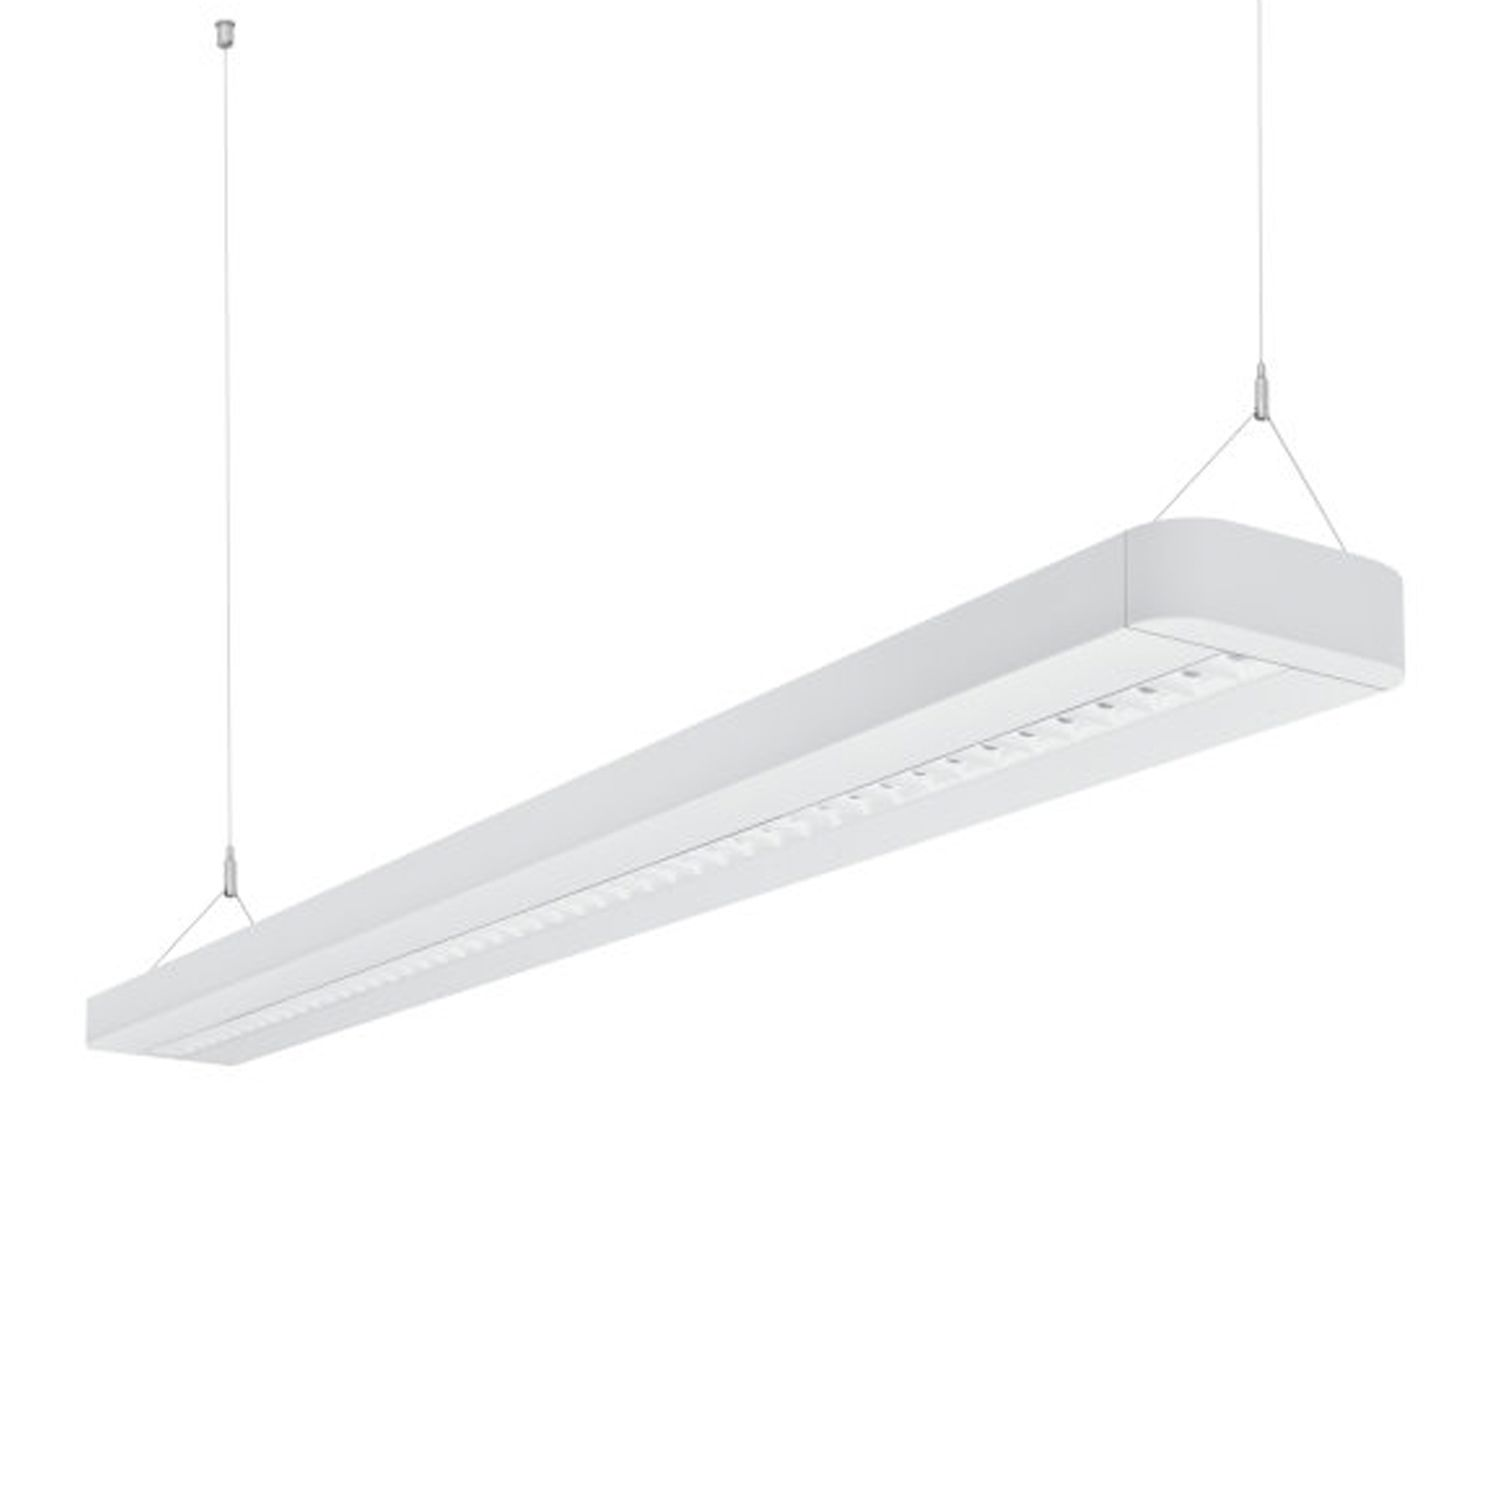 Ledvance LINEAR IndiviLED DIRECT 35W 120cm 3000K  | Dali Regulable - Luz Cálida